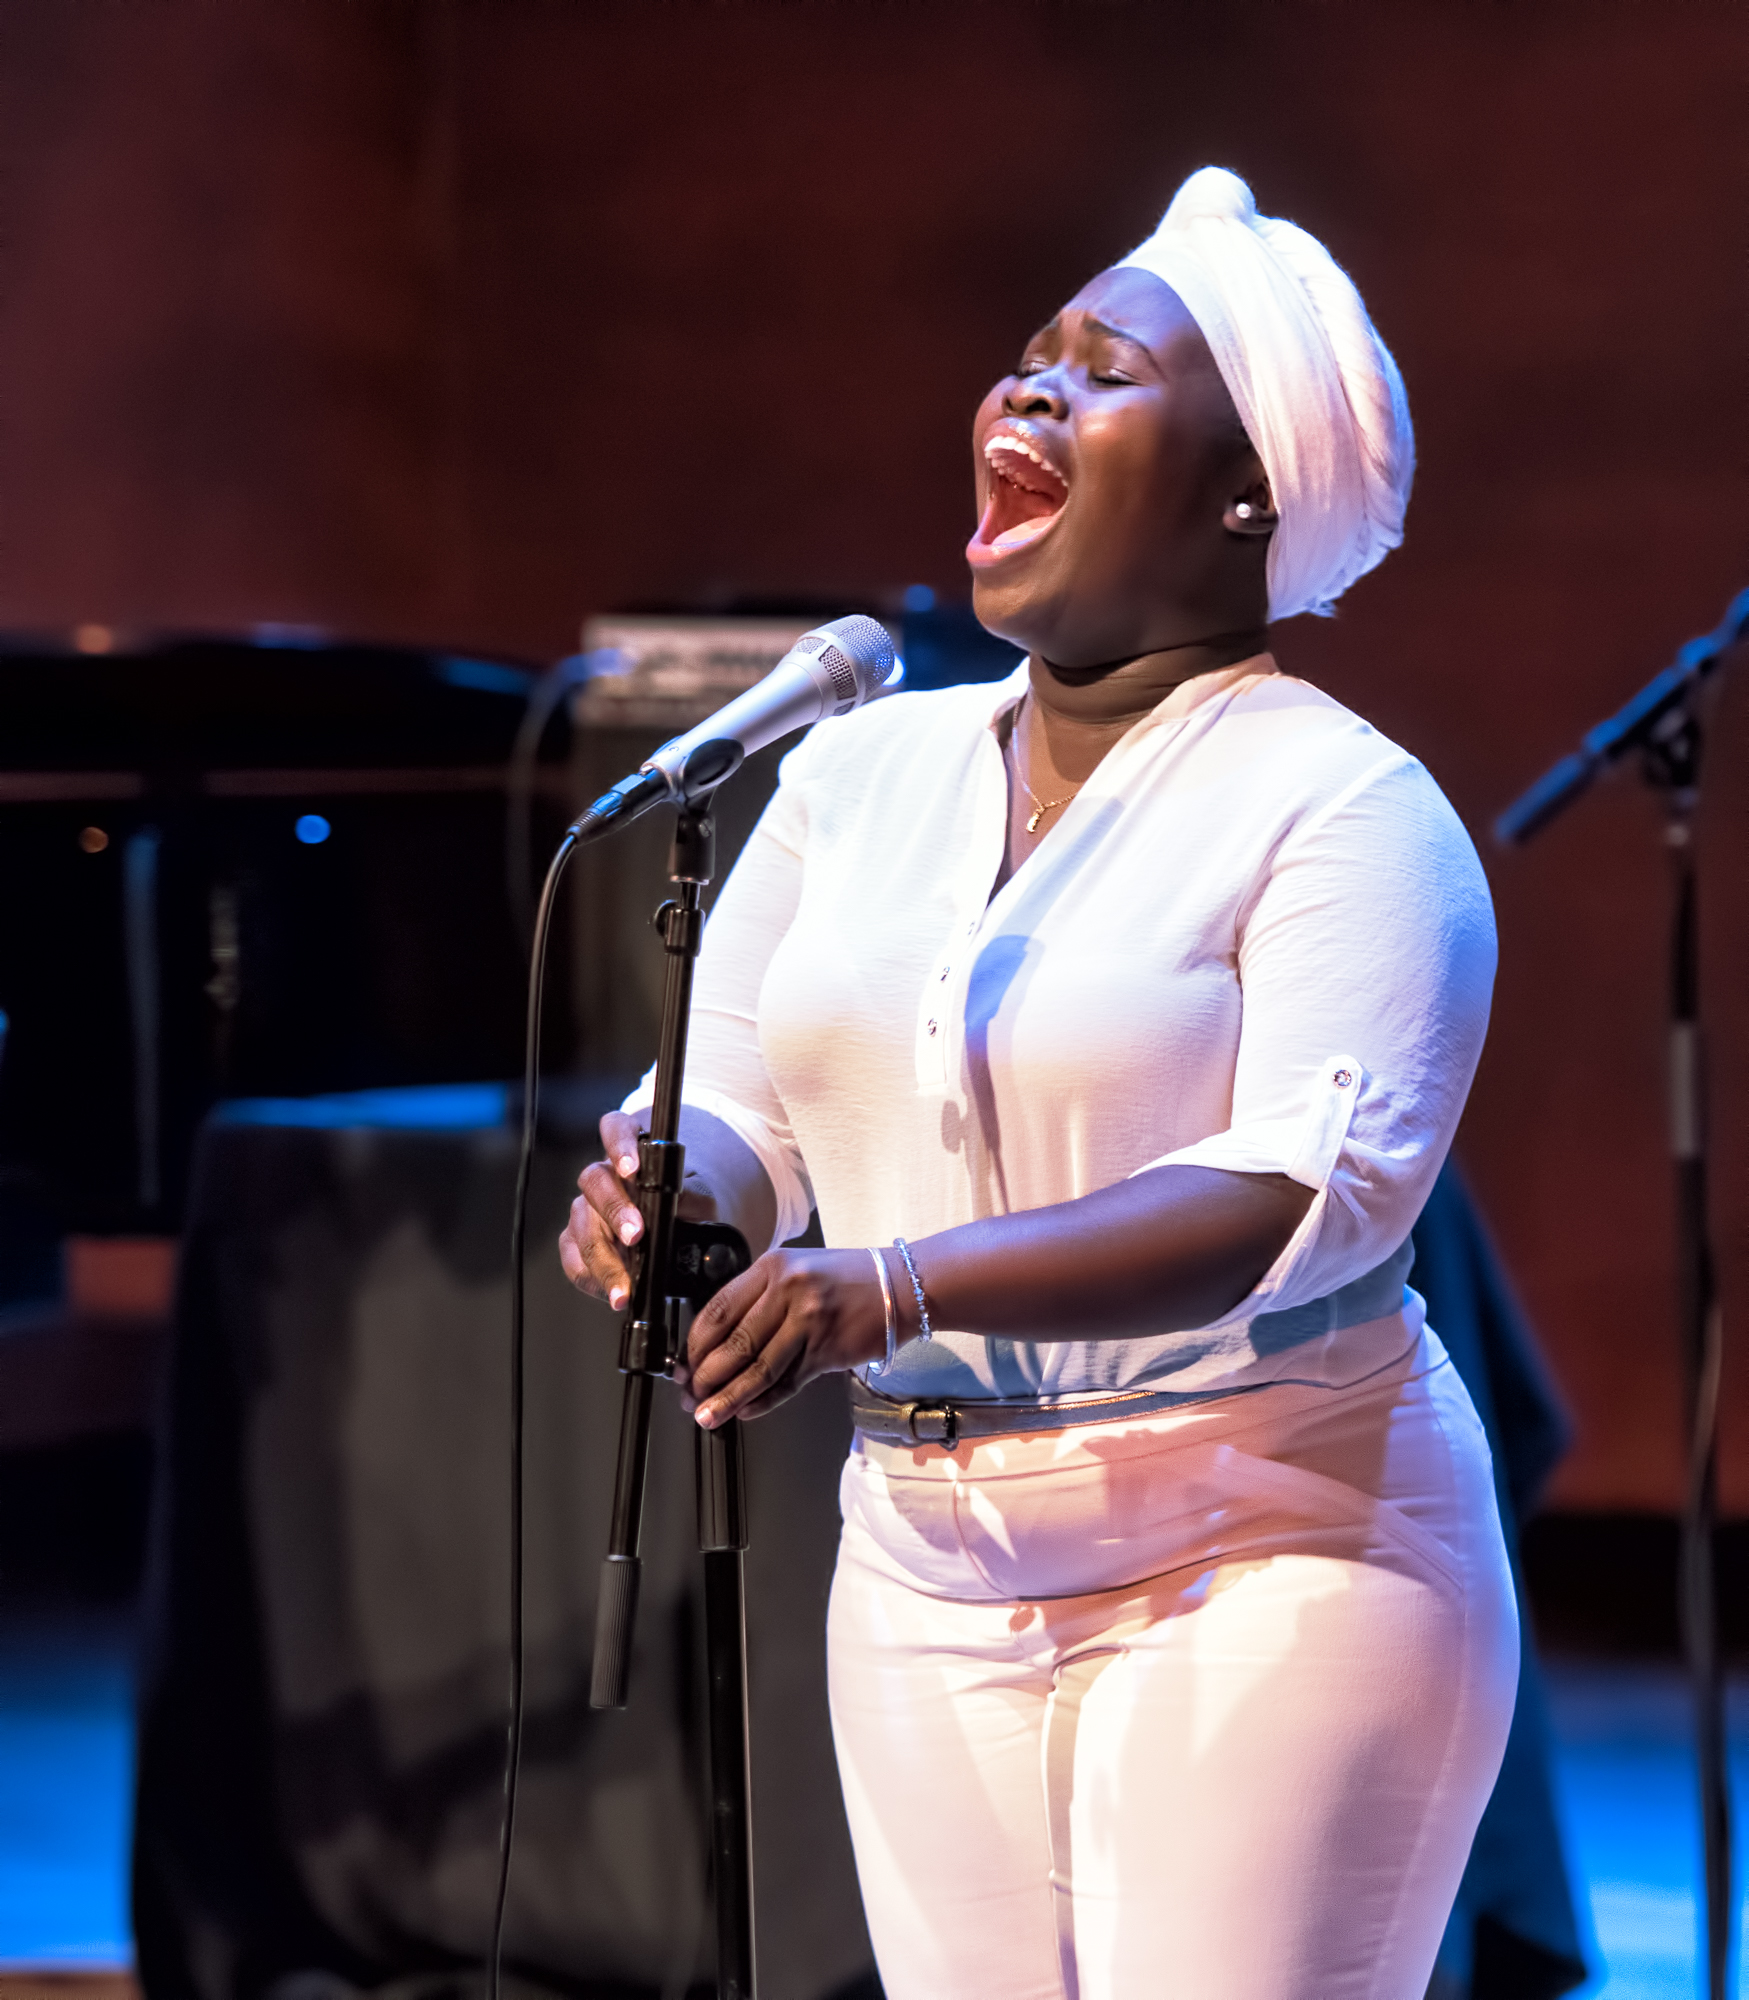 Dayme Arocena With Jane Bunnett And Macqueque At The Musical Instrument Museum (mim) In Phoenix